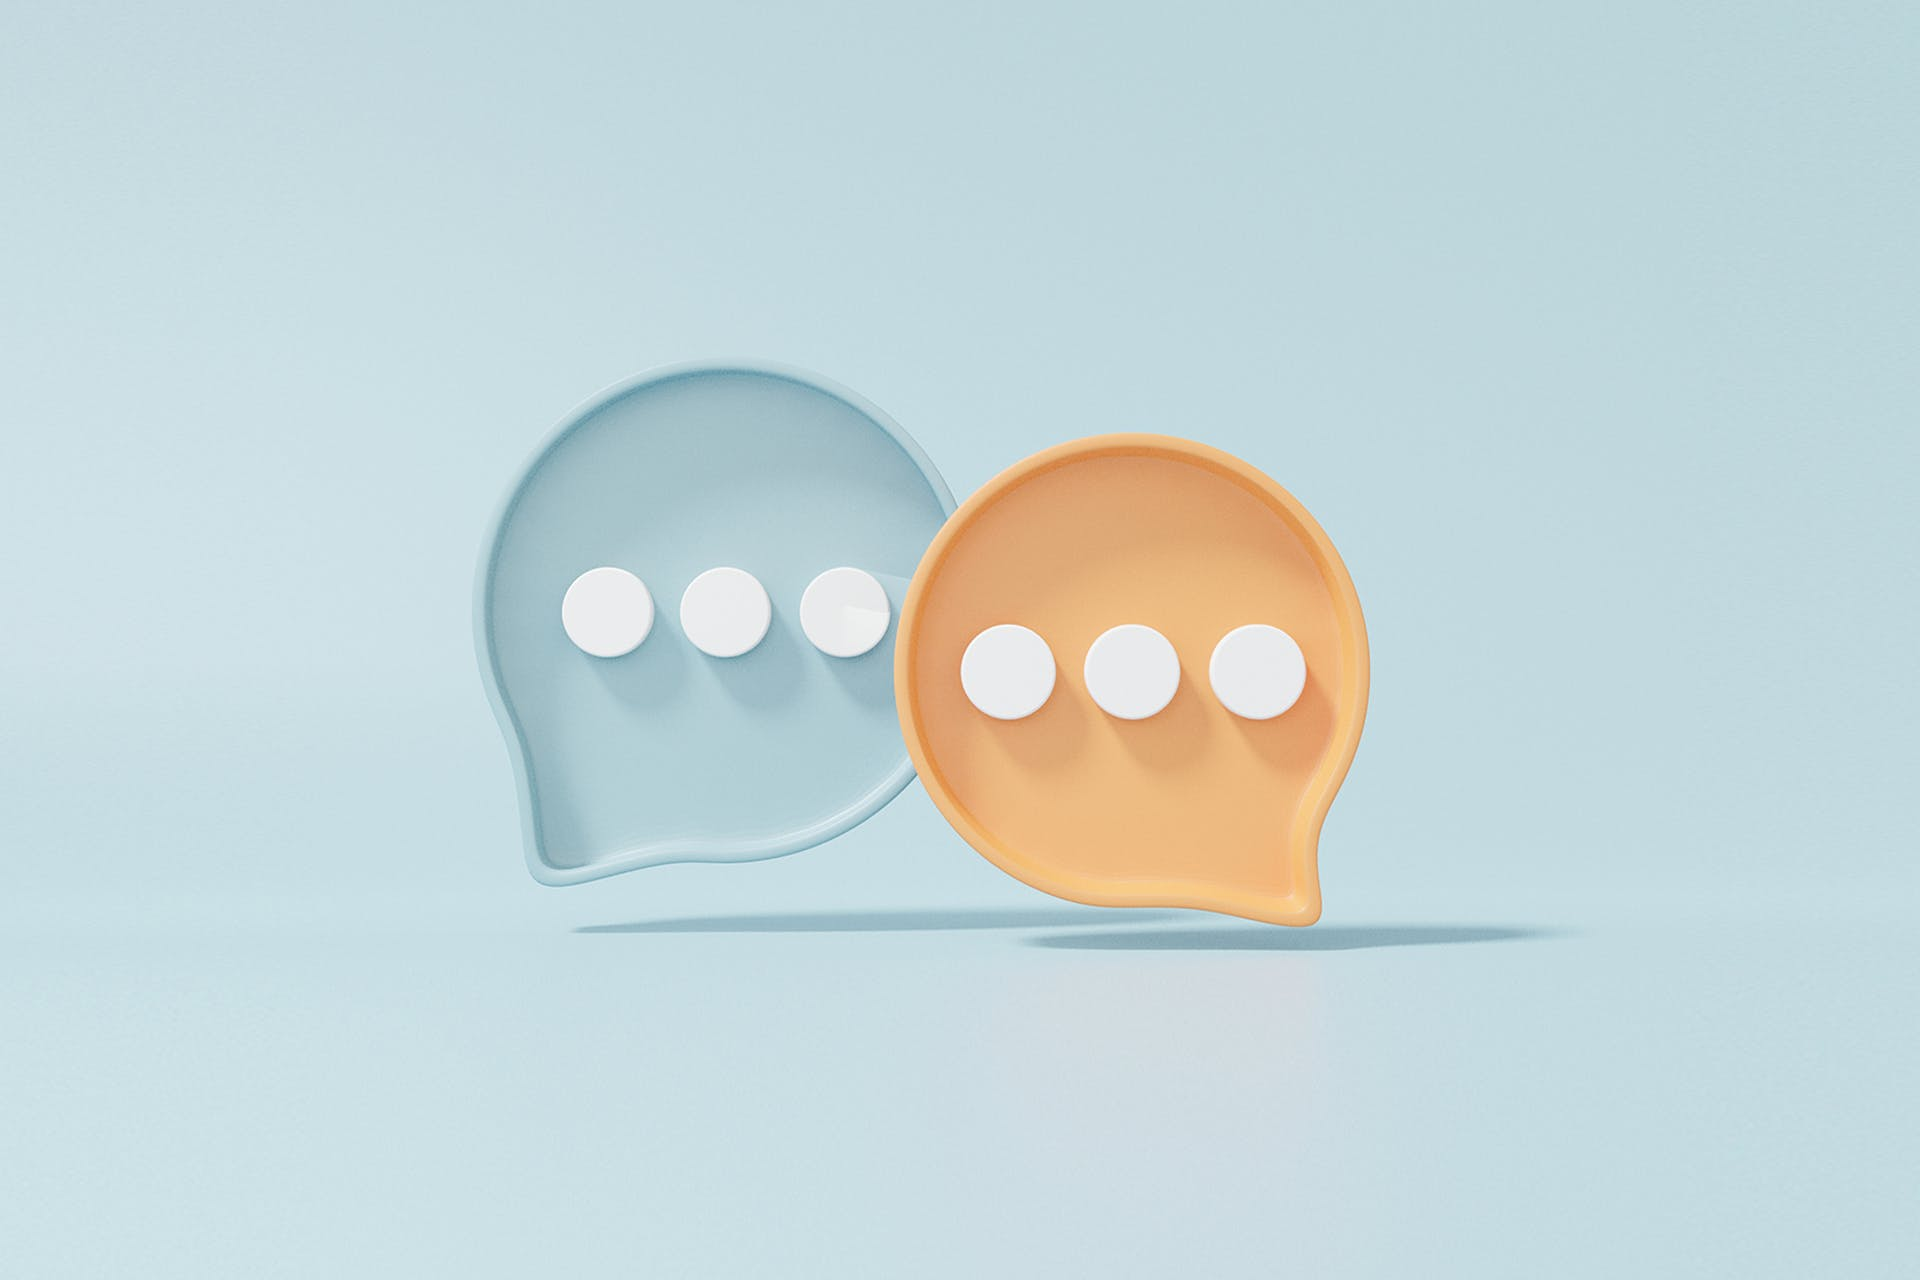 Two chat bubbles (one orange and one blue) are floating in the center of the image. Maintaining open lines of communication is essential for businesses to operate smoothly. This blog explains the importance of internal communications for businesses and the various tactics companies can use to ensure information is following throughout departments.